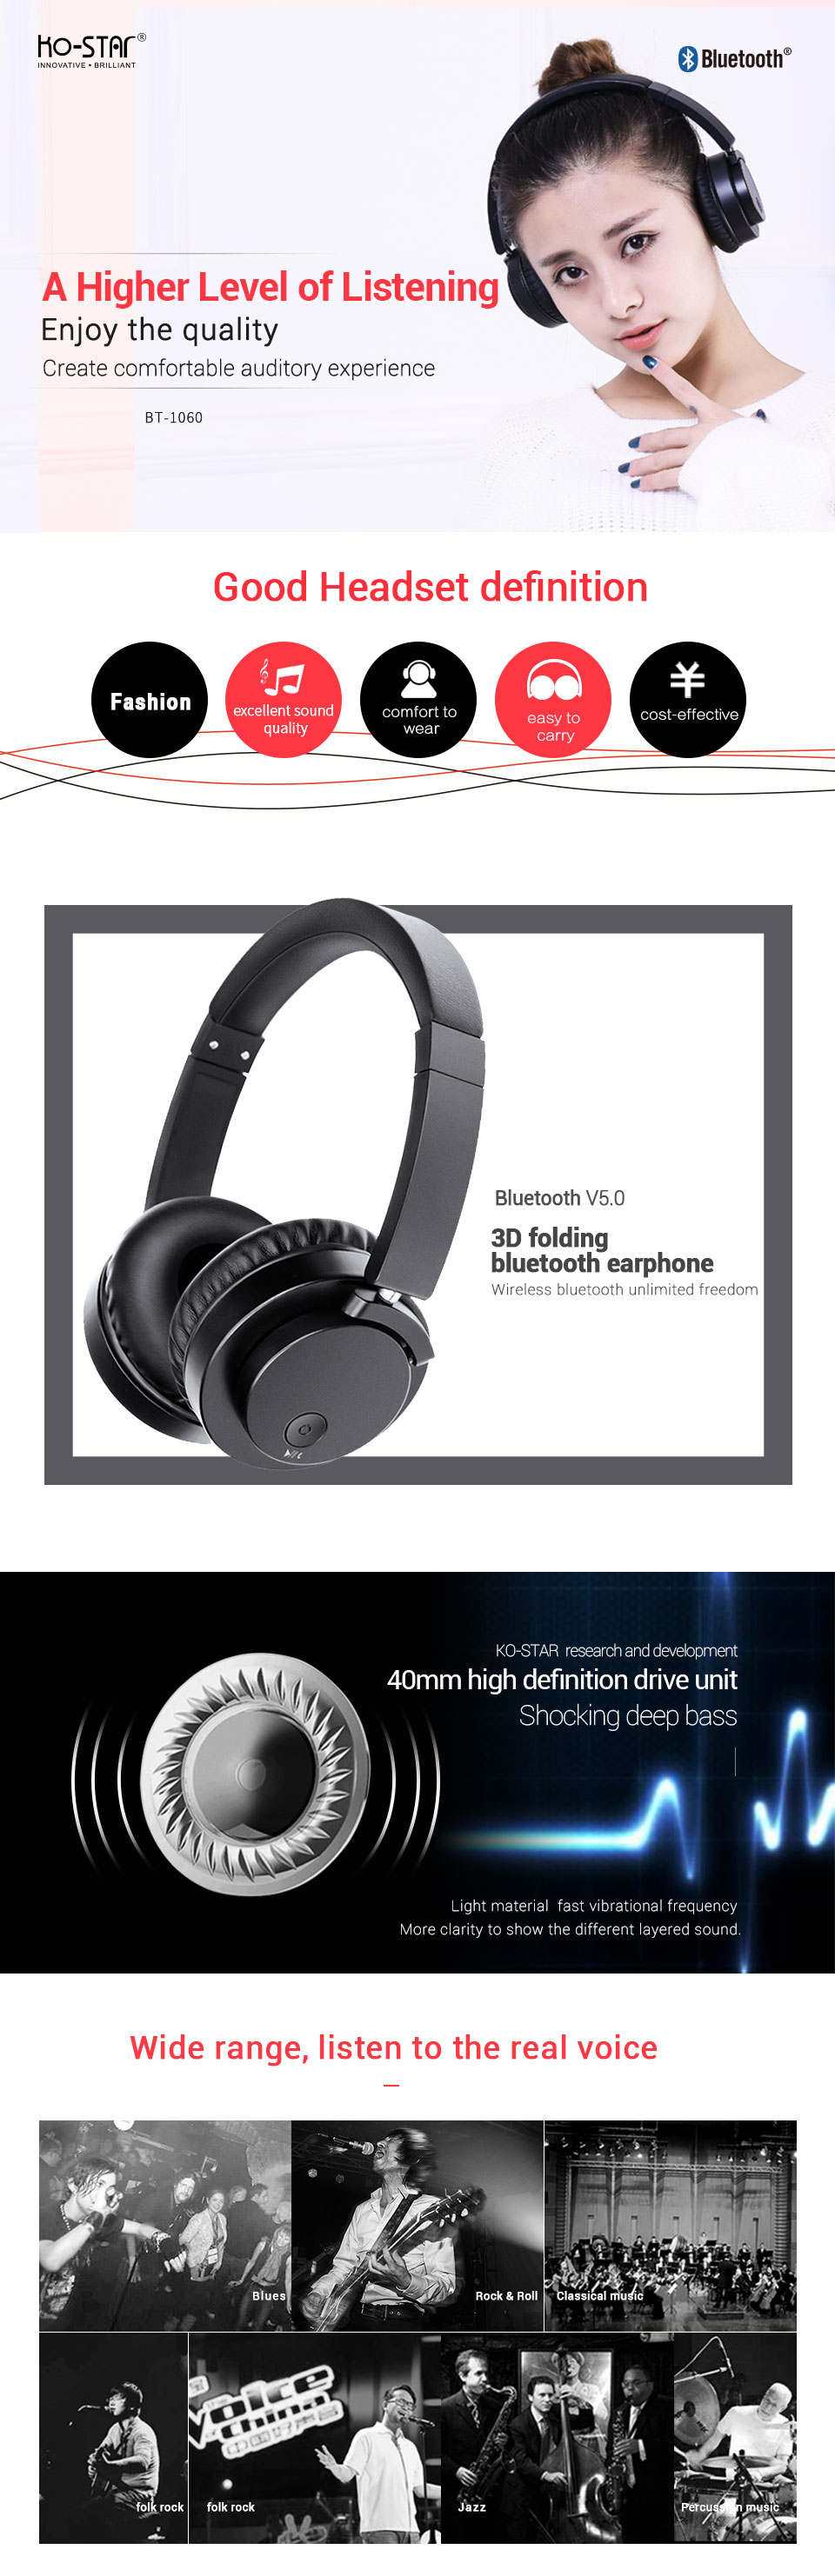 Upgraded Portable Wireless Headphone Bluetooth Stereo 3D Folding Headphone Audio Mp3 Adjustable Headphone with Music Microphone